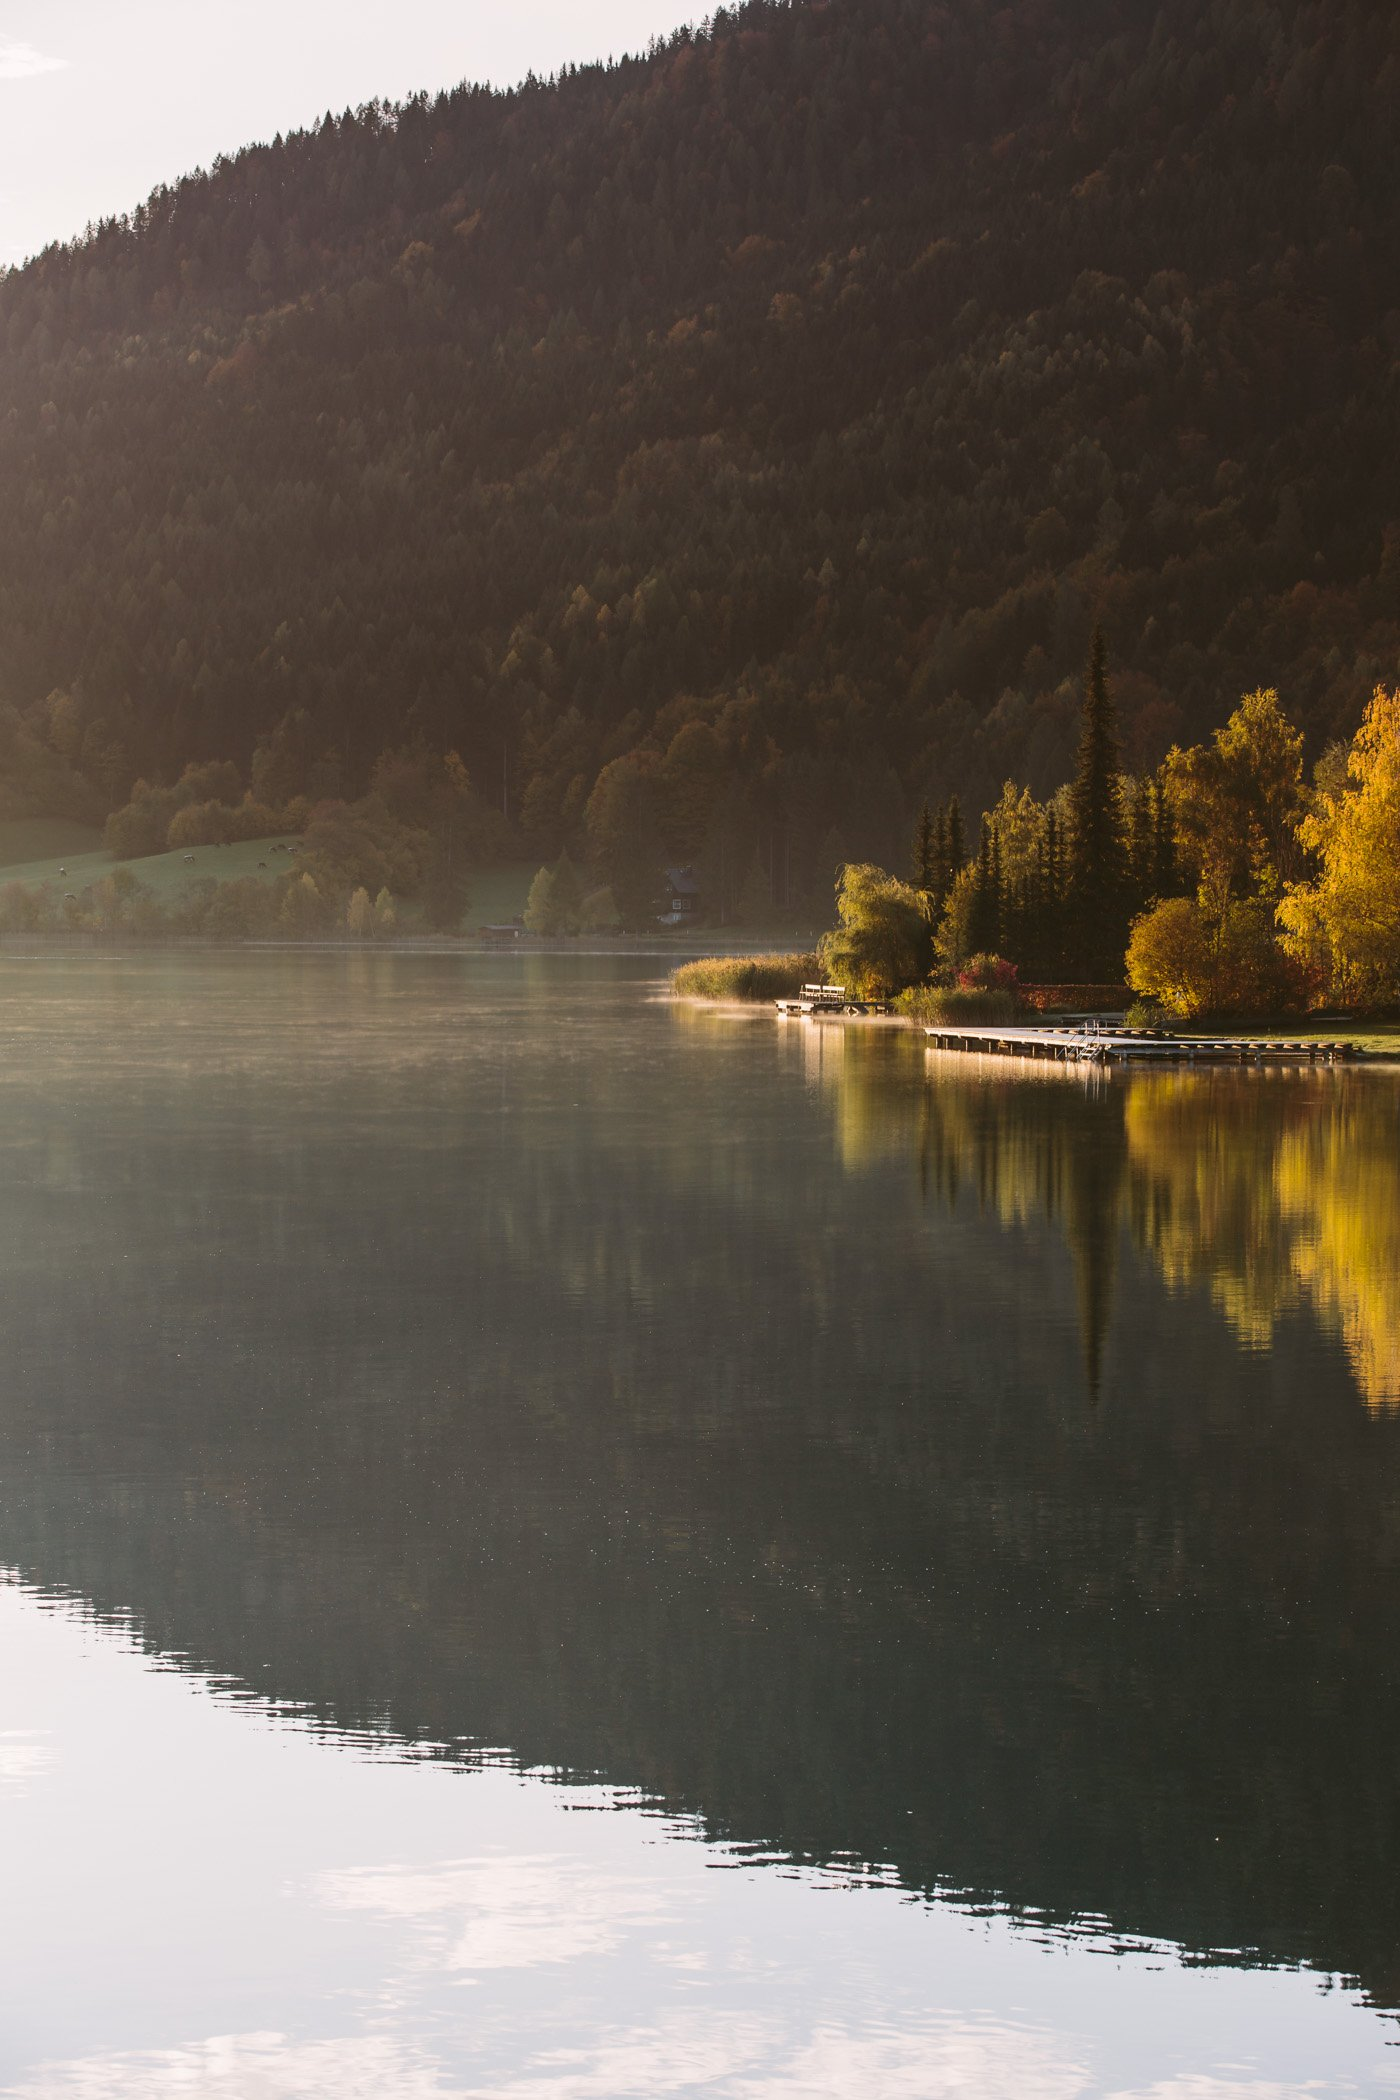 Lake Weissensee at sunrise, in Carinthia Austria